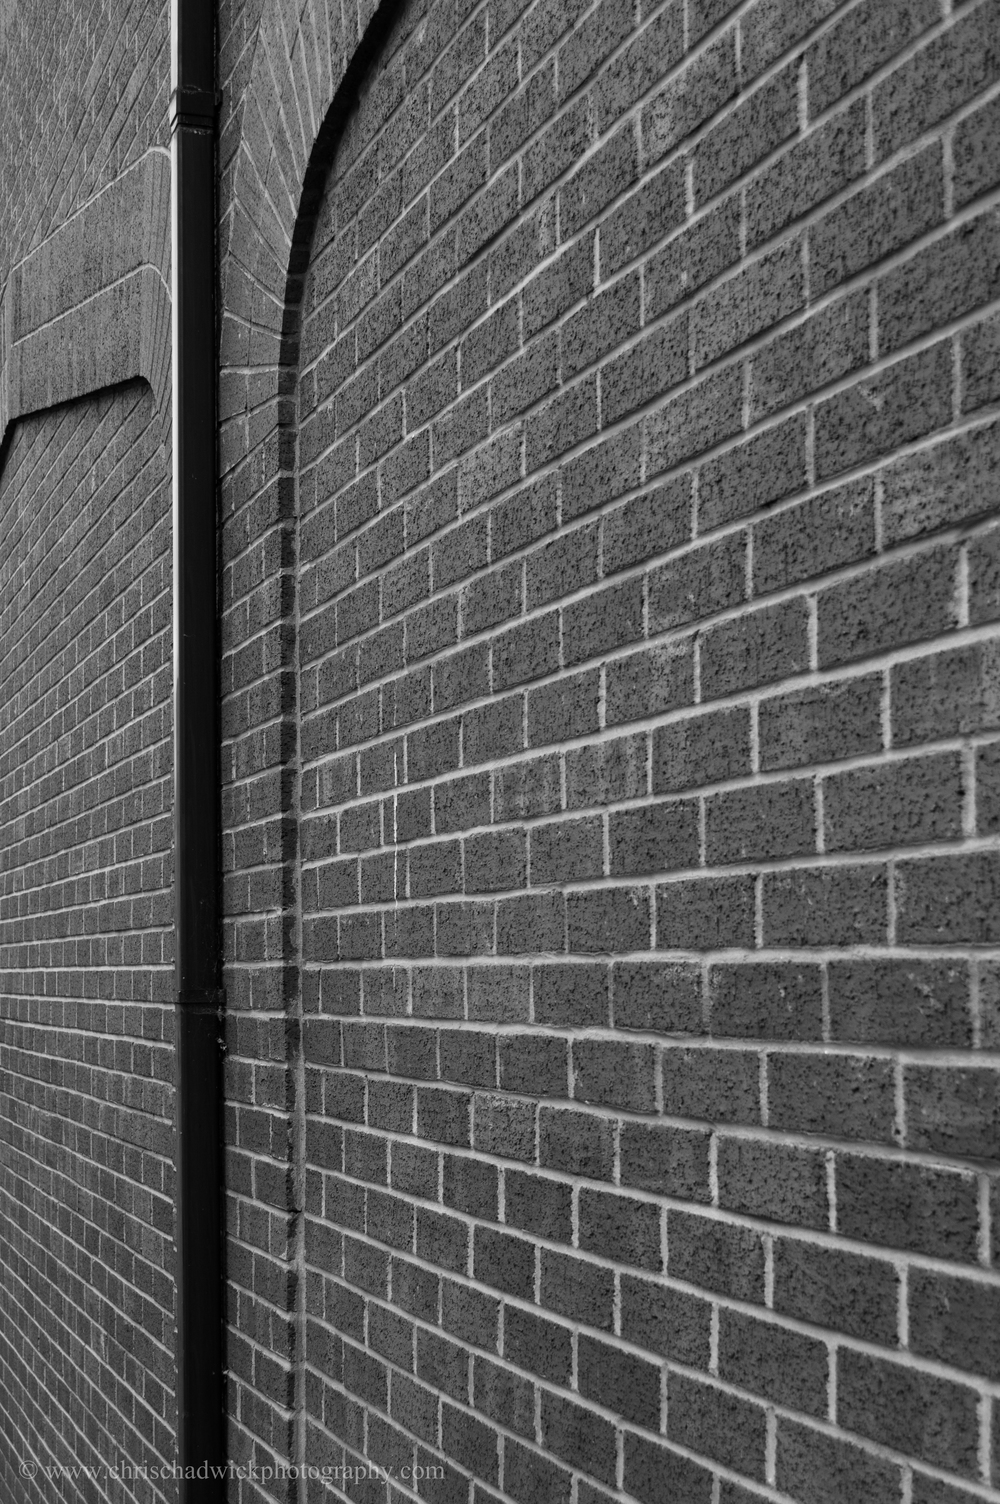 A vertical black drainpipe contrasts with the lighter toned bricks.